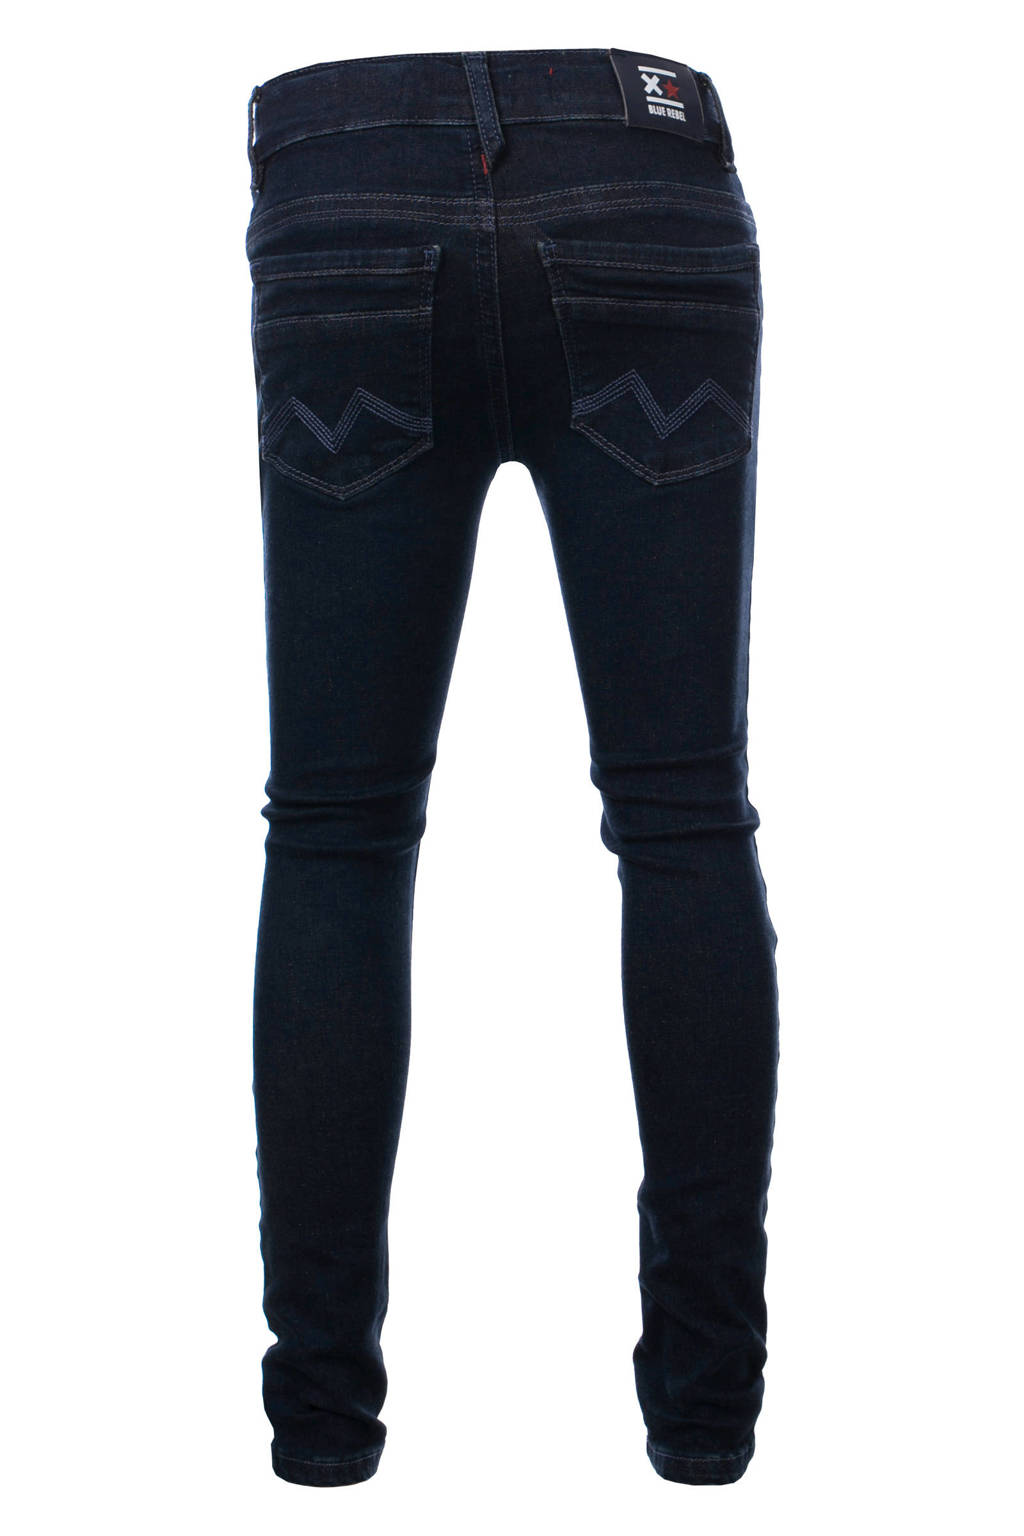 Blue Rebel skinny jeans donkerblauw, Donkerblauw